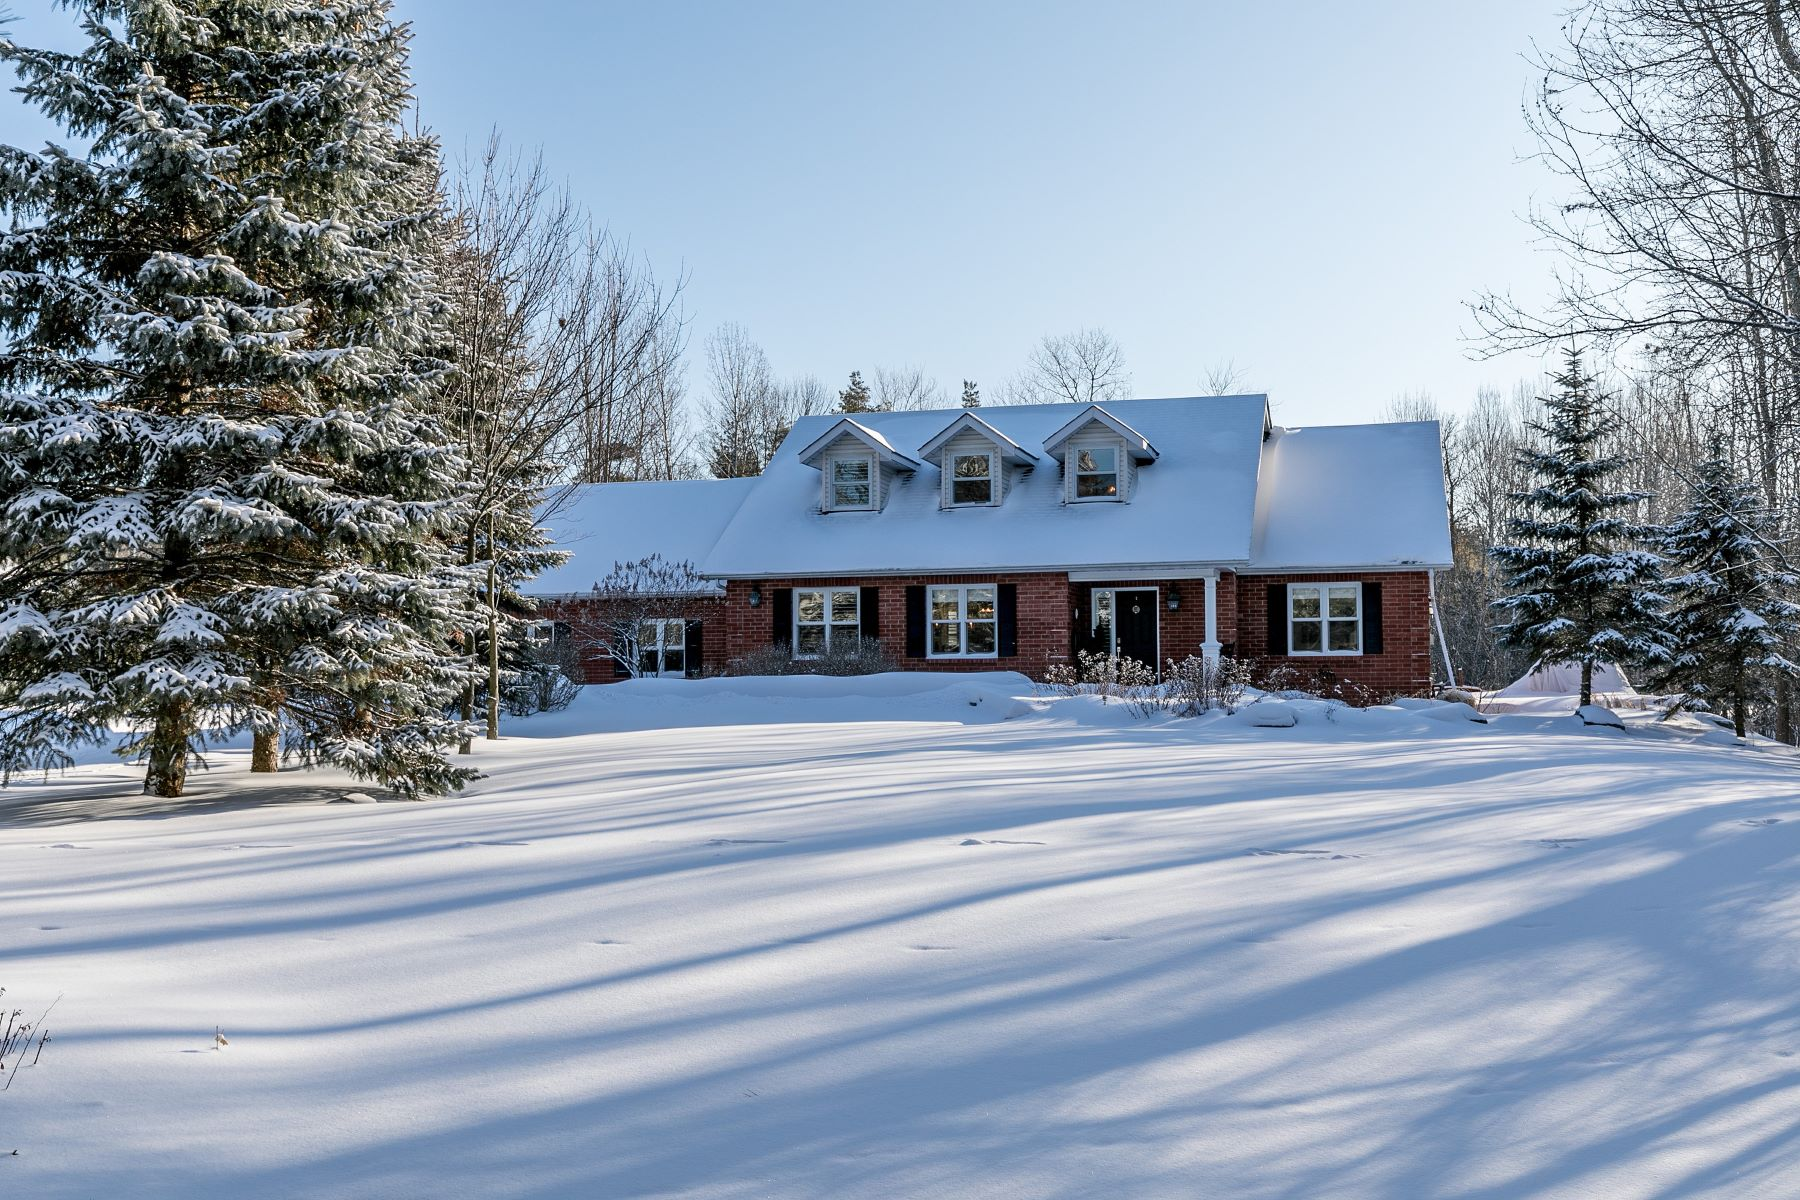 Single Family Homes for Sale at Stunning Executive Home 3 Alpine Crt Collingwood, Ontario L9Y 4W7 Canada